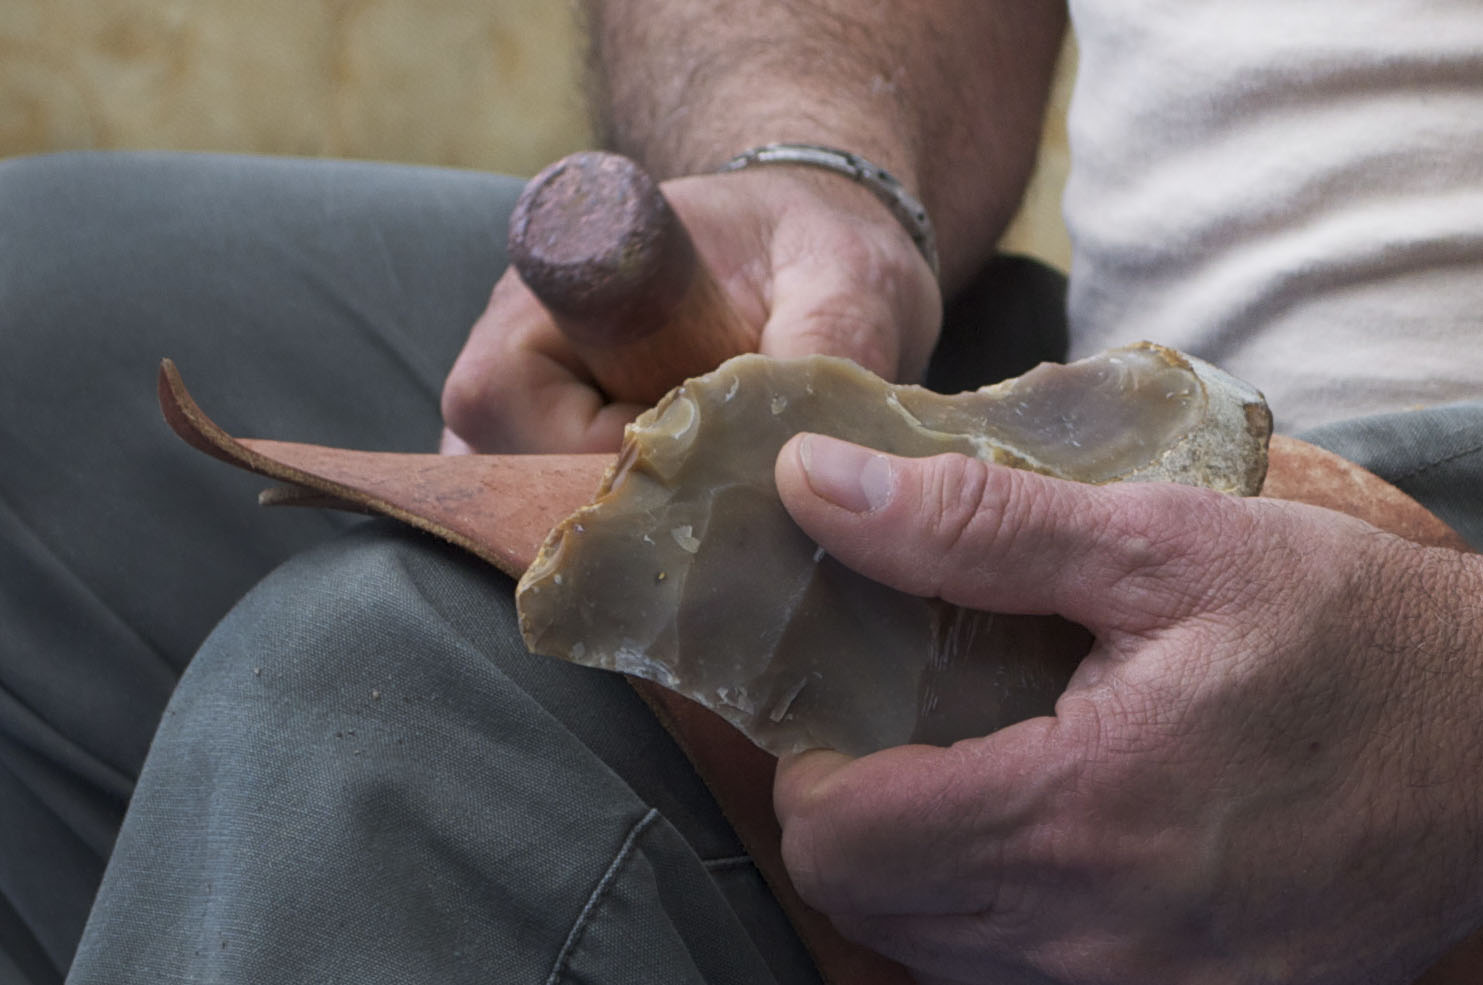 Whitfield, who began flint knapping in the early '80s, uses a tool known as a bopper, which has a copper body and a lead tip, to flake away bits of a Pedernales stone. Once finished, the arrow head will be roughly half of its total size.